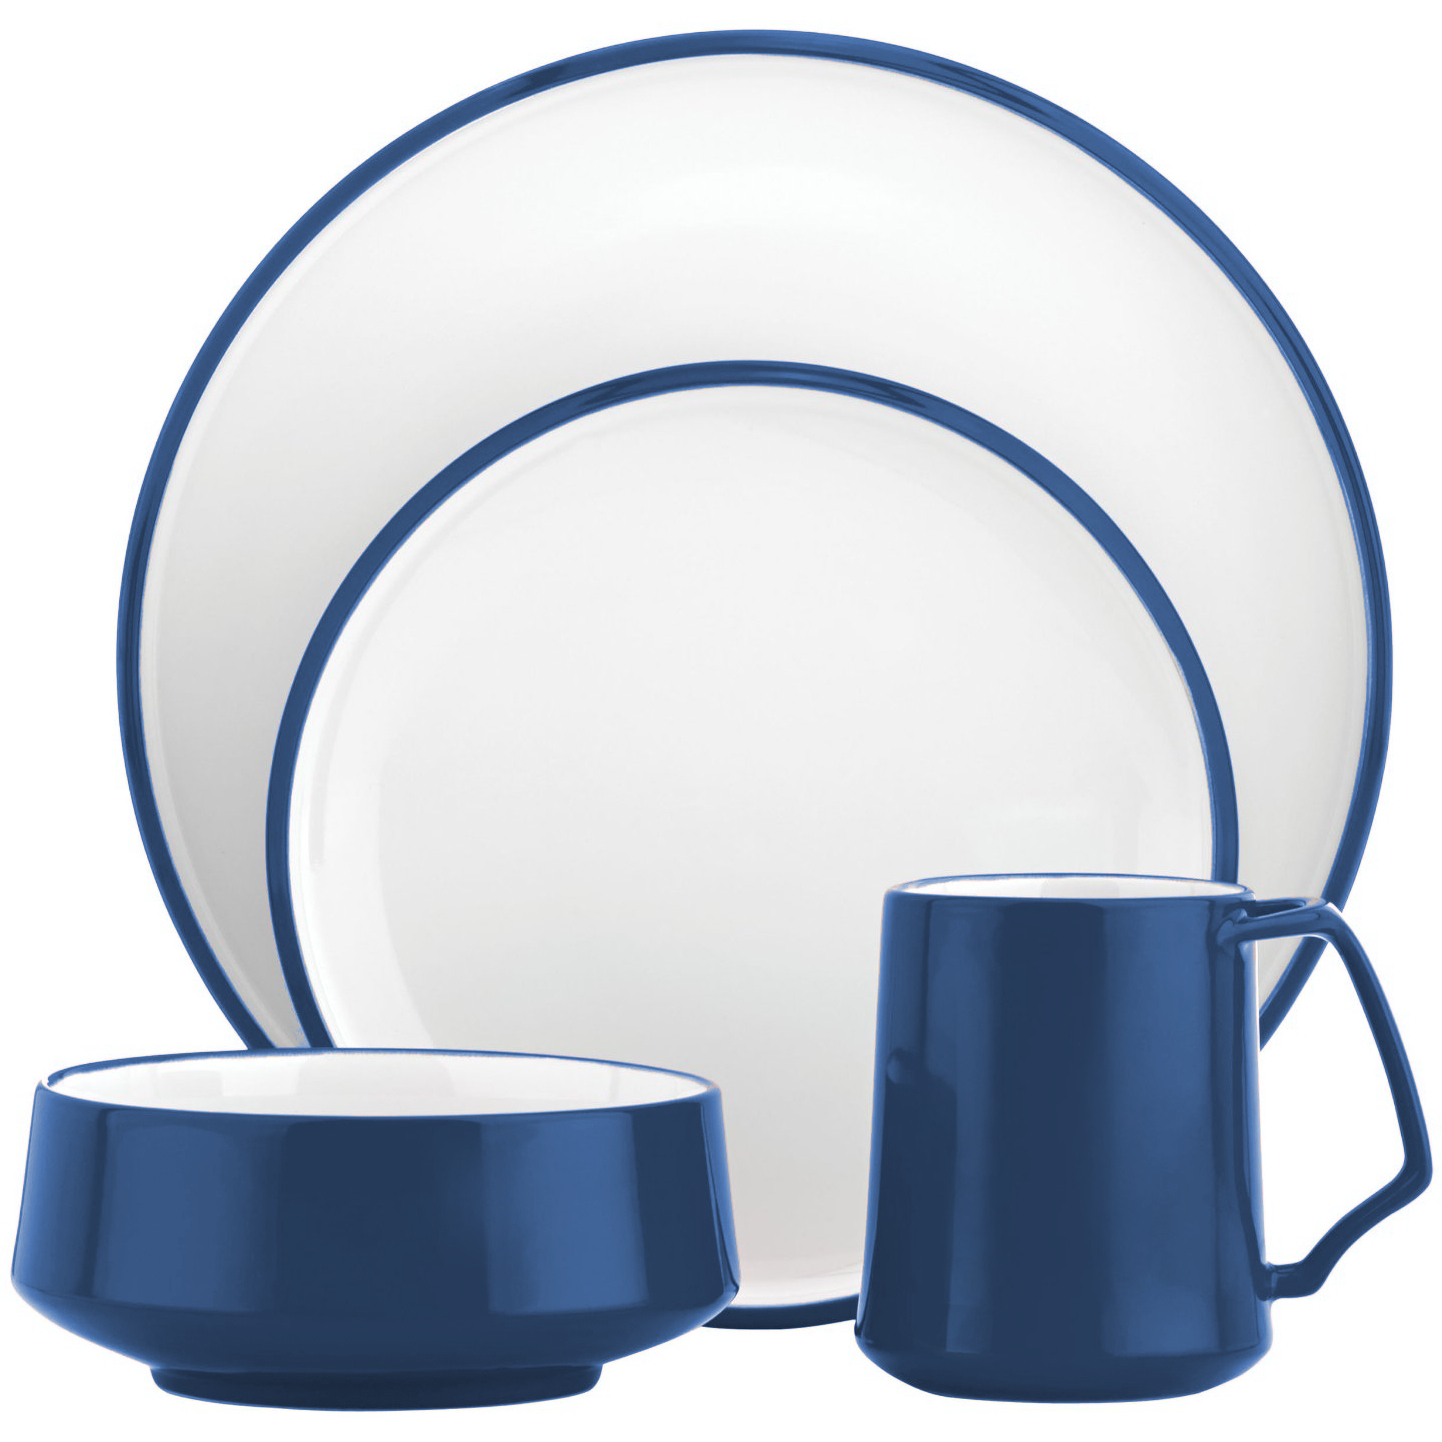 Dansk Kobenstyle 4 Piece Blue Stoneware Dishware Set, Service for 1